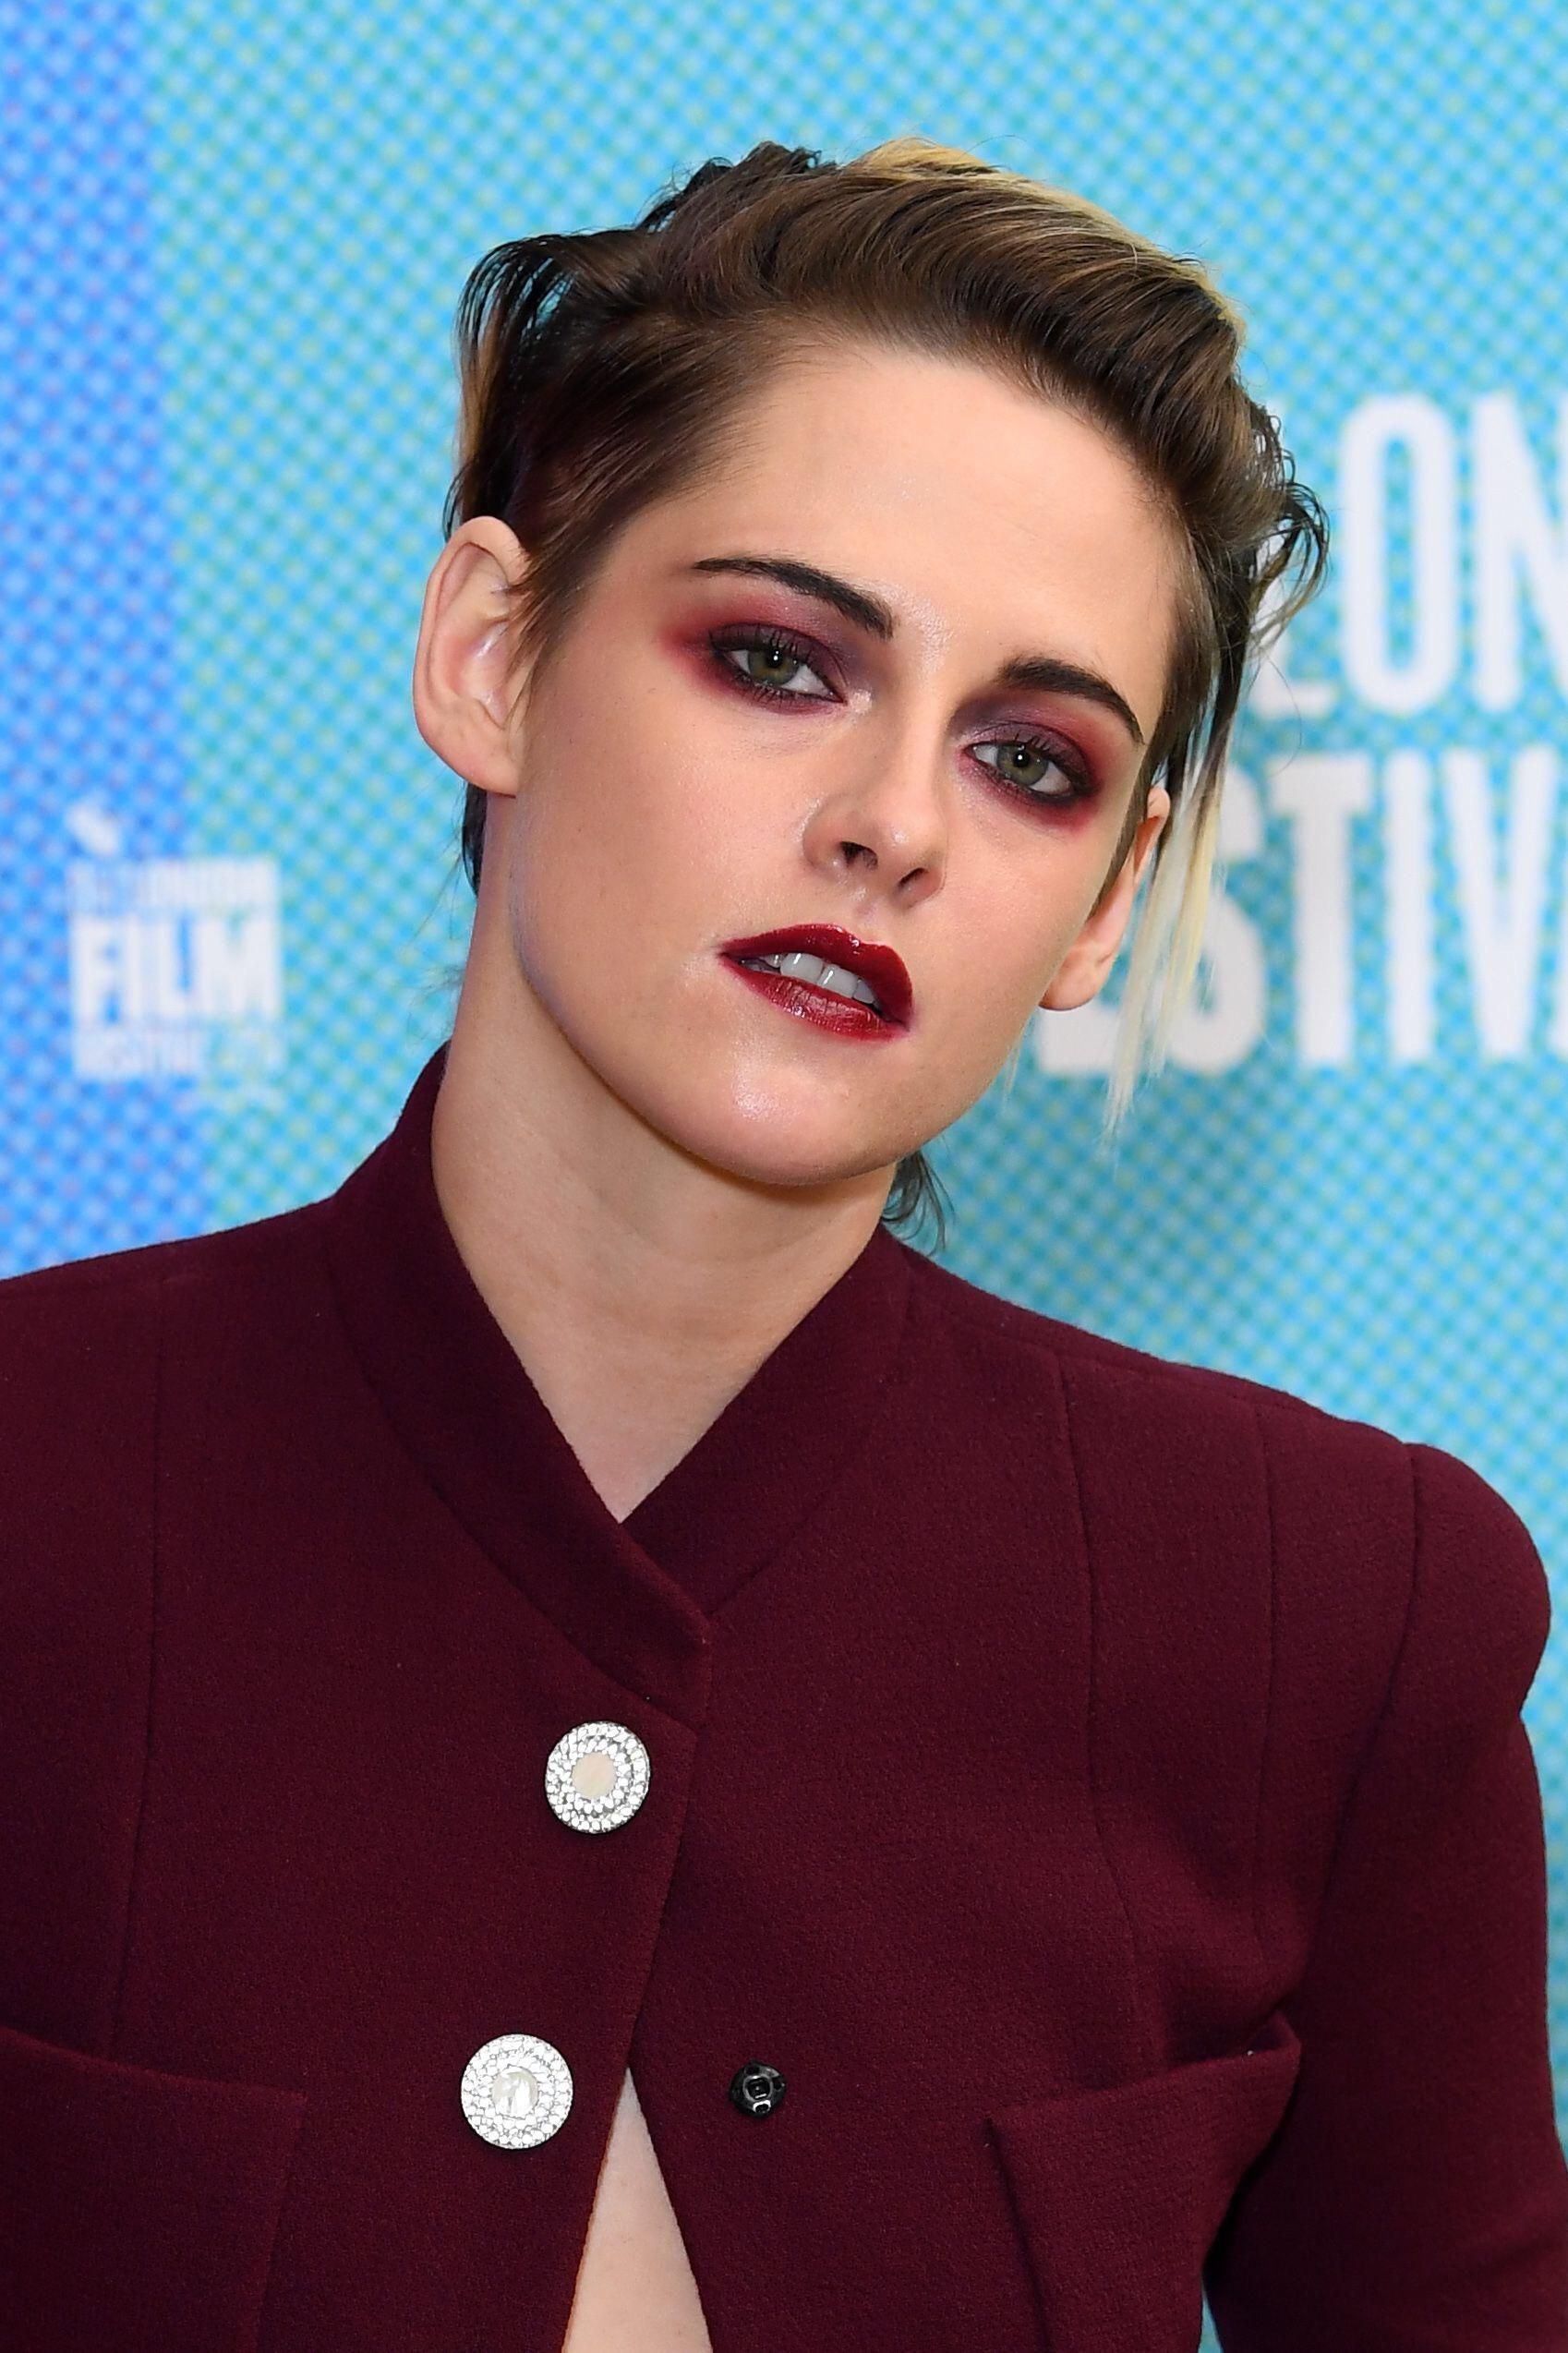 London Filmfestival 2 With Images Kristen Stewart Hair Kristen Stewart Kirsten Stewart